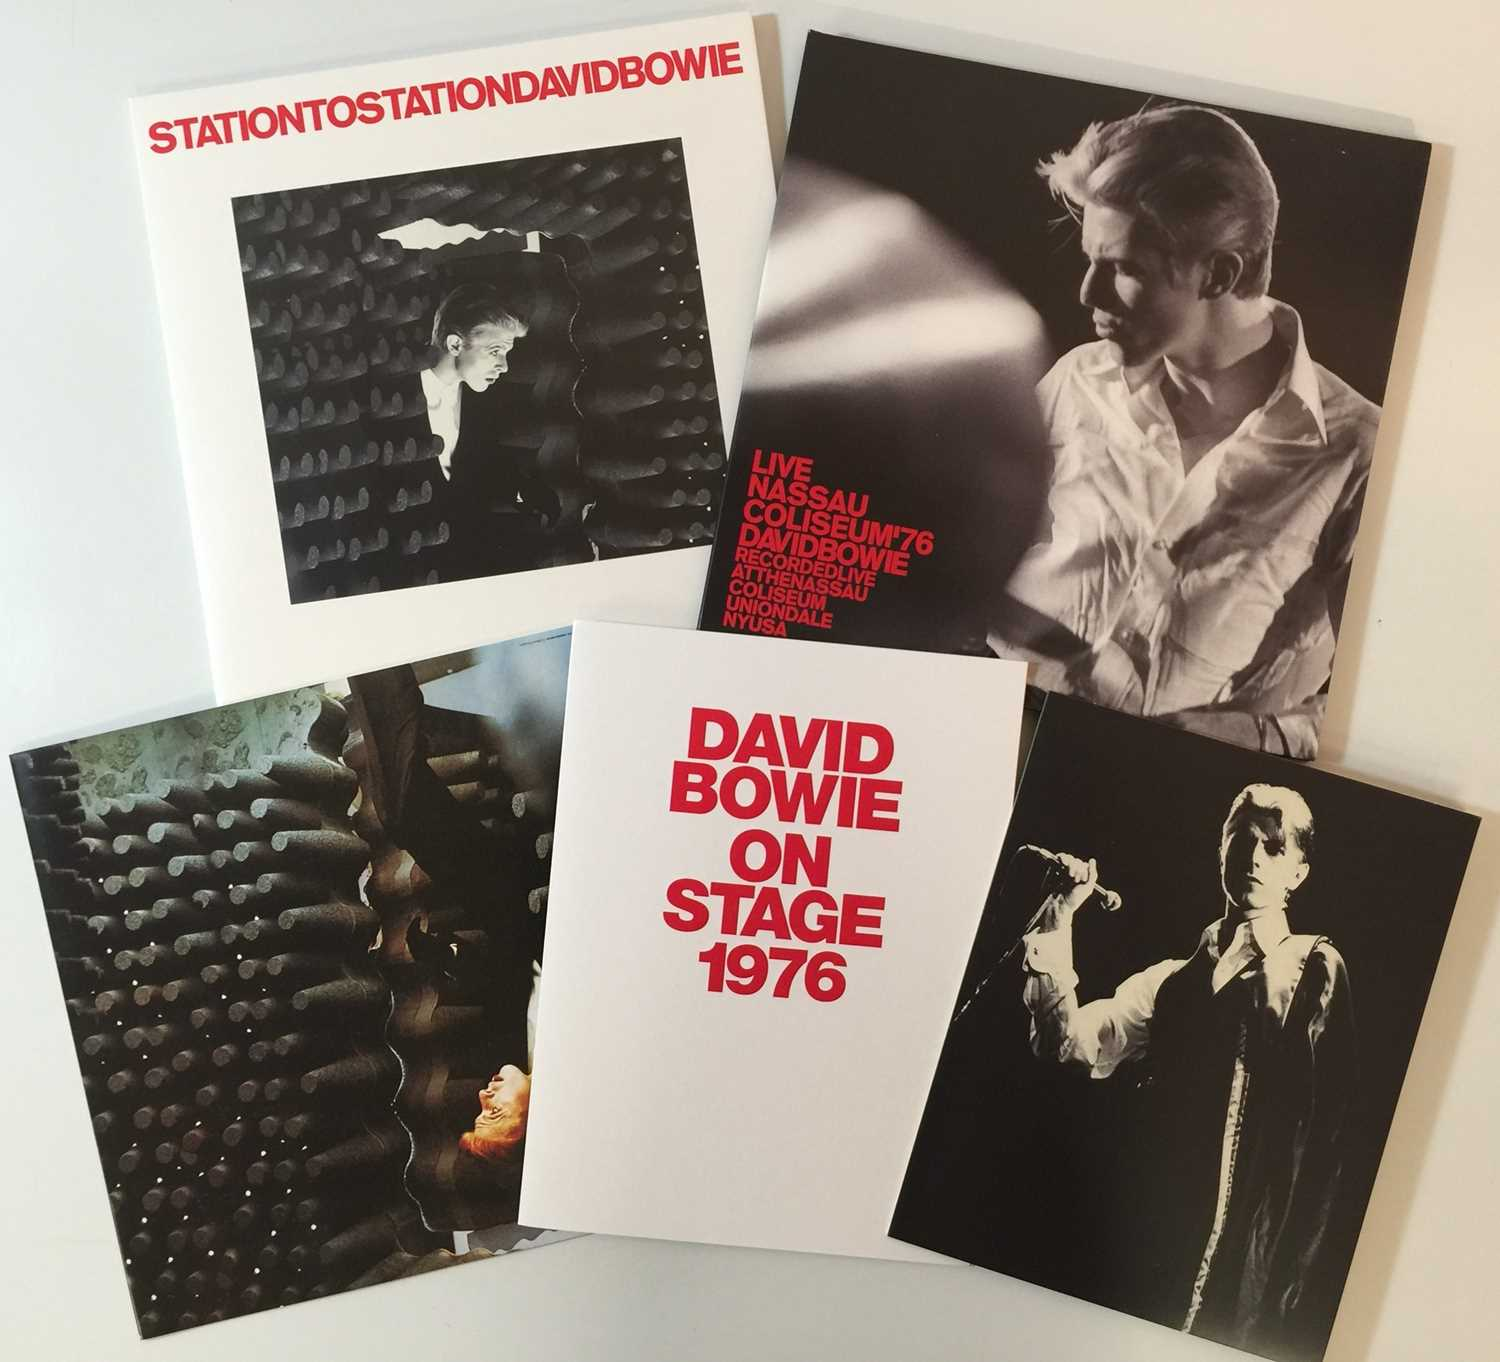 DAVID BOWIE - STATION TO STATION - DELUXE LP/ CD BOX-SET(BOWSTSD2010) - Image 3 of 5